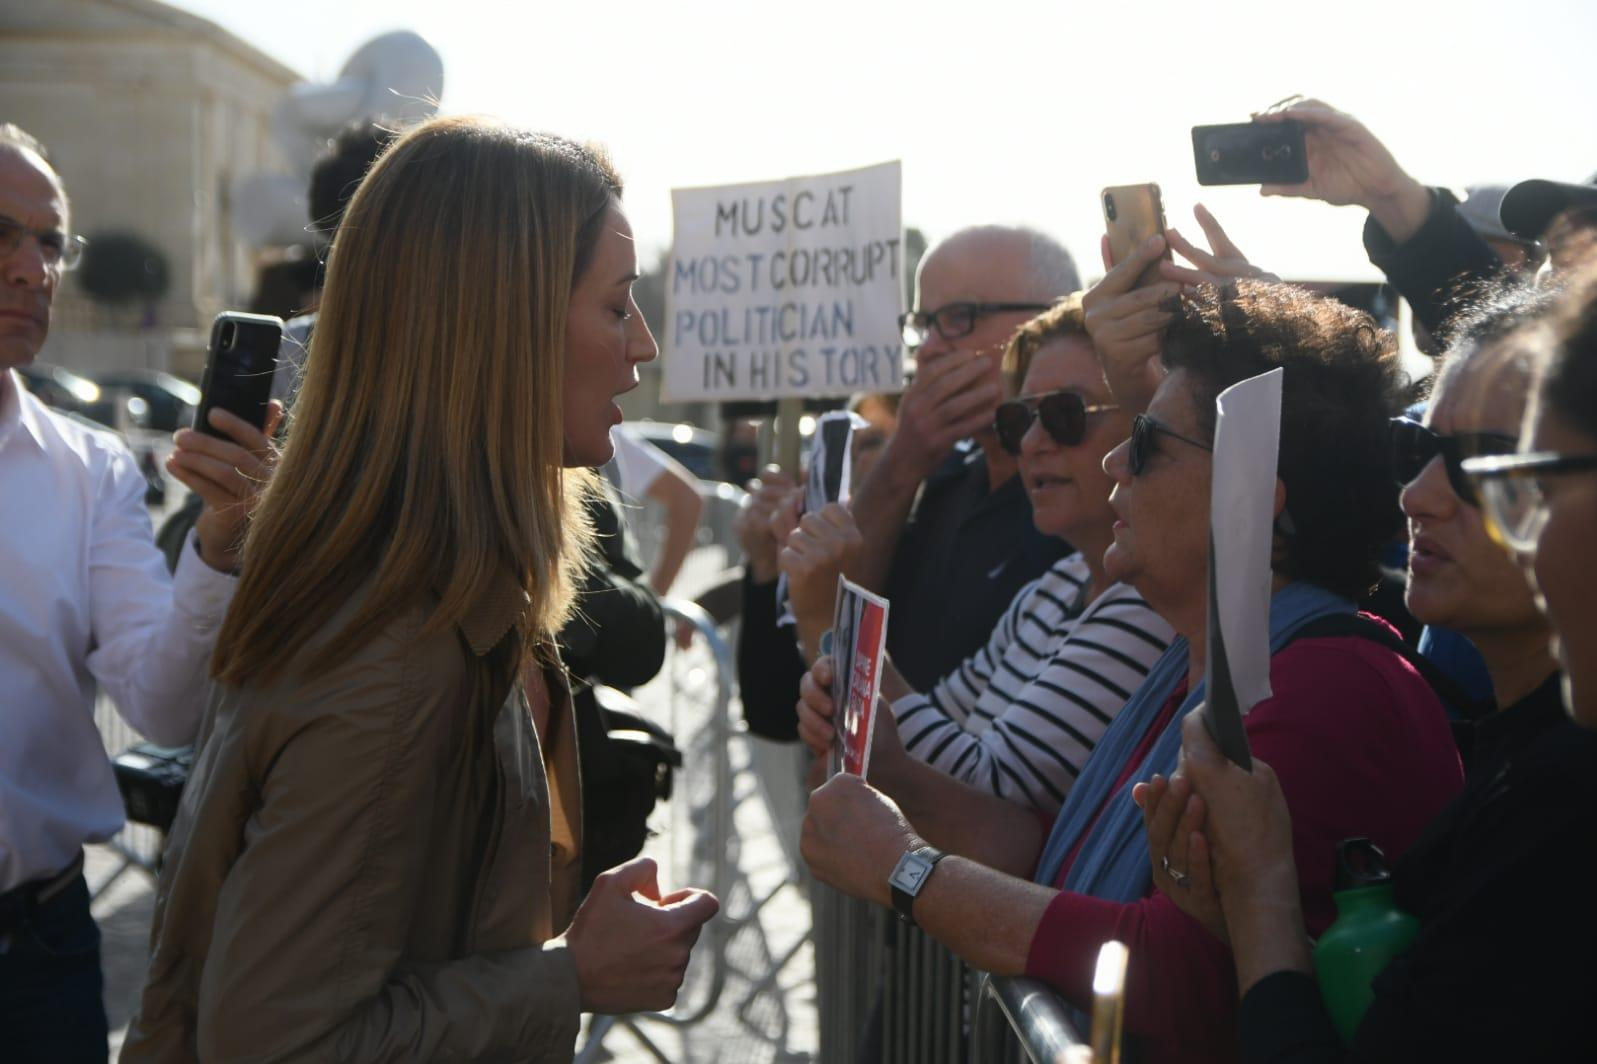 Nationalist MEP Roberta Metsola meets protesters outside Castille on Tuesday morning. Photo: Jonathan Borg